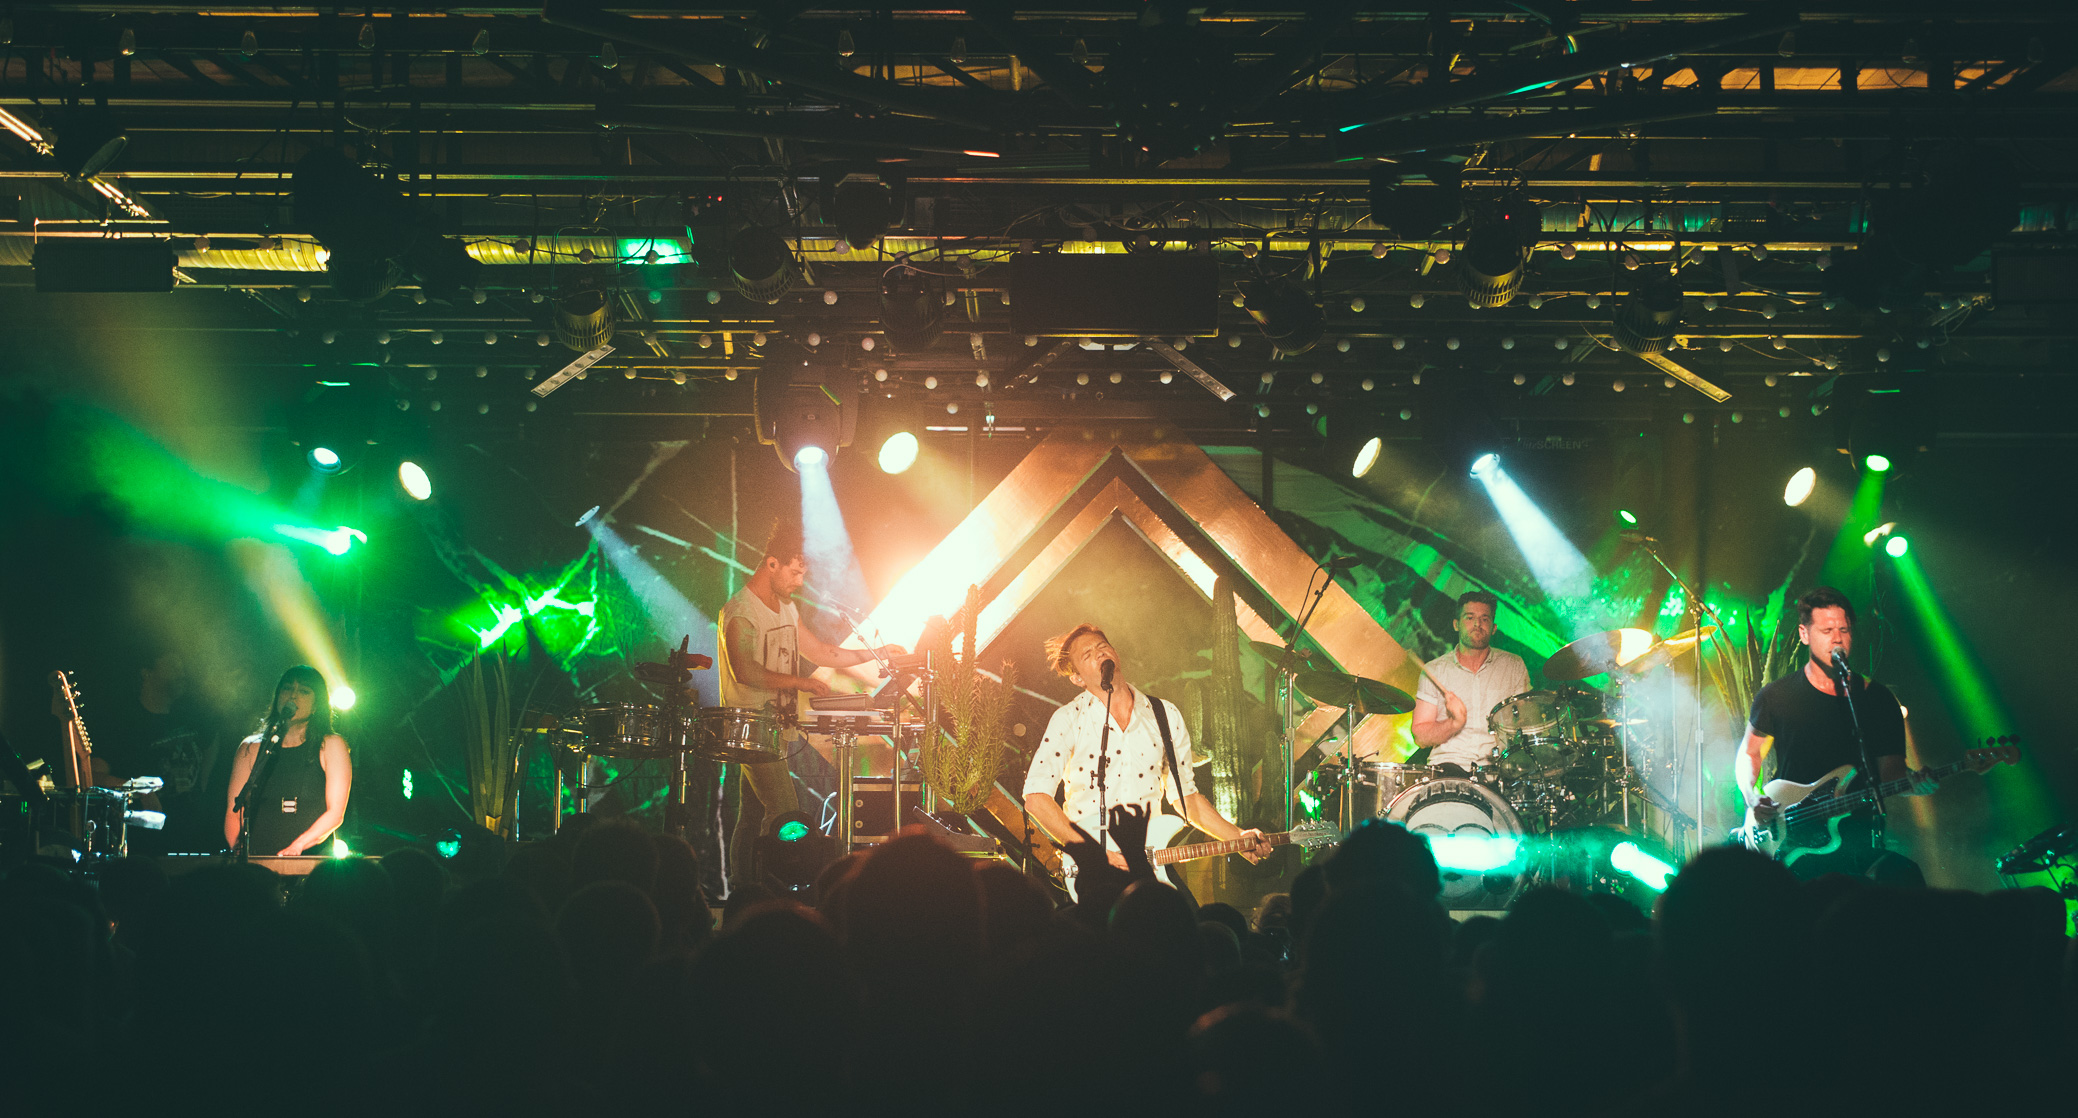 St. Lucia performs at Saturn Birmingham in Birmingham, Alabama on June 9th, 2016. (Photo by David A. Smith/DSmithScenes)